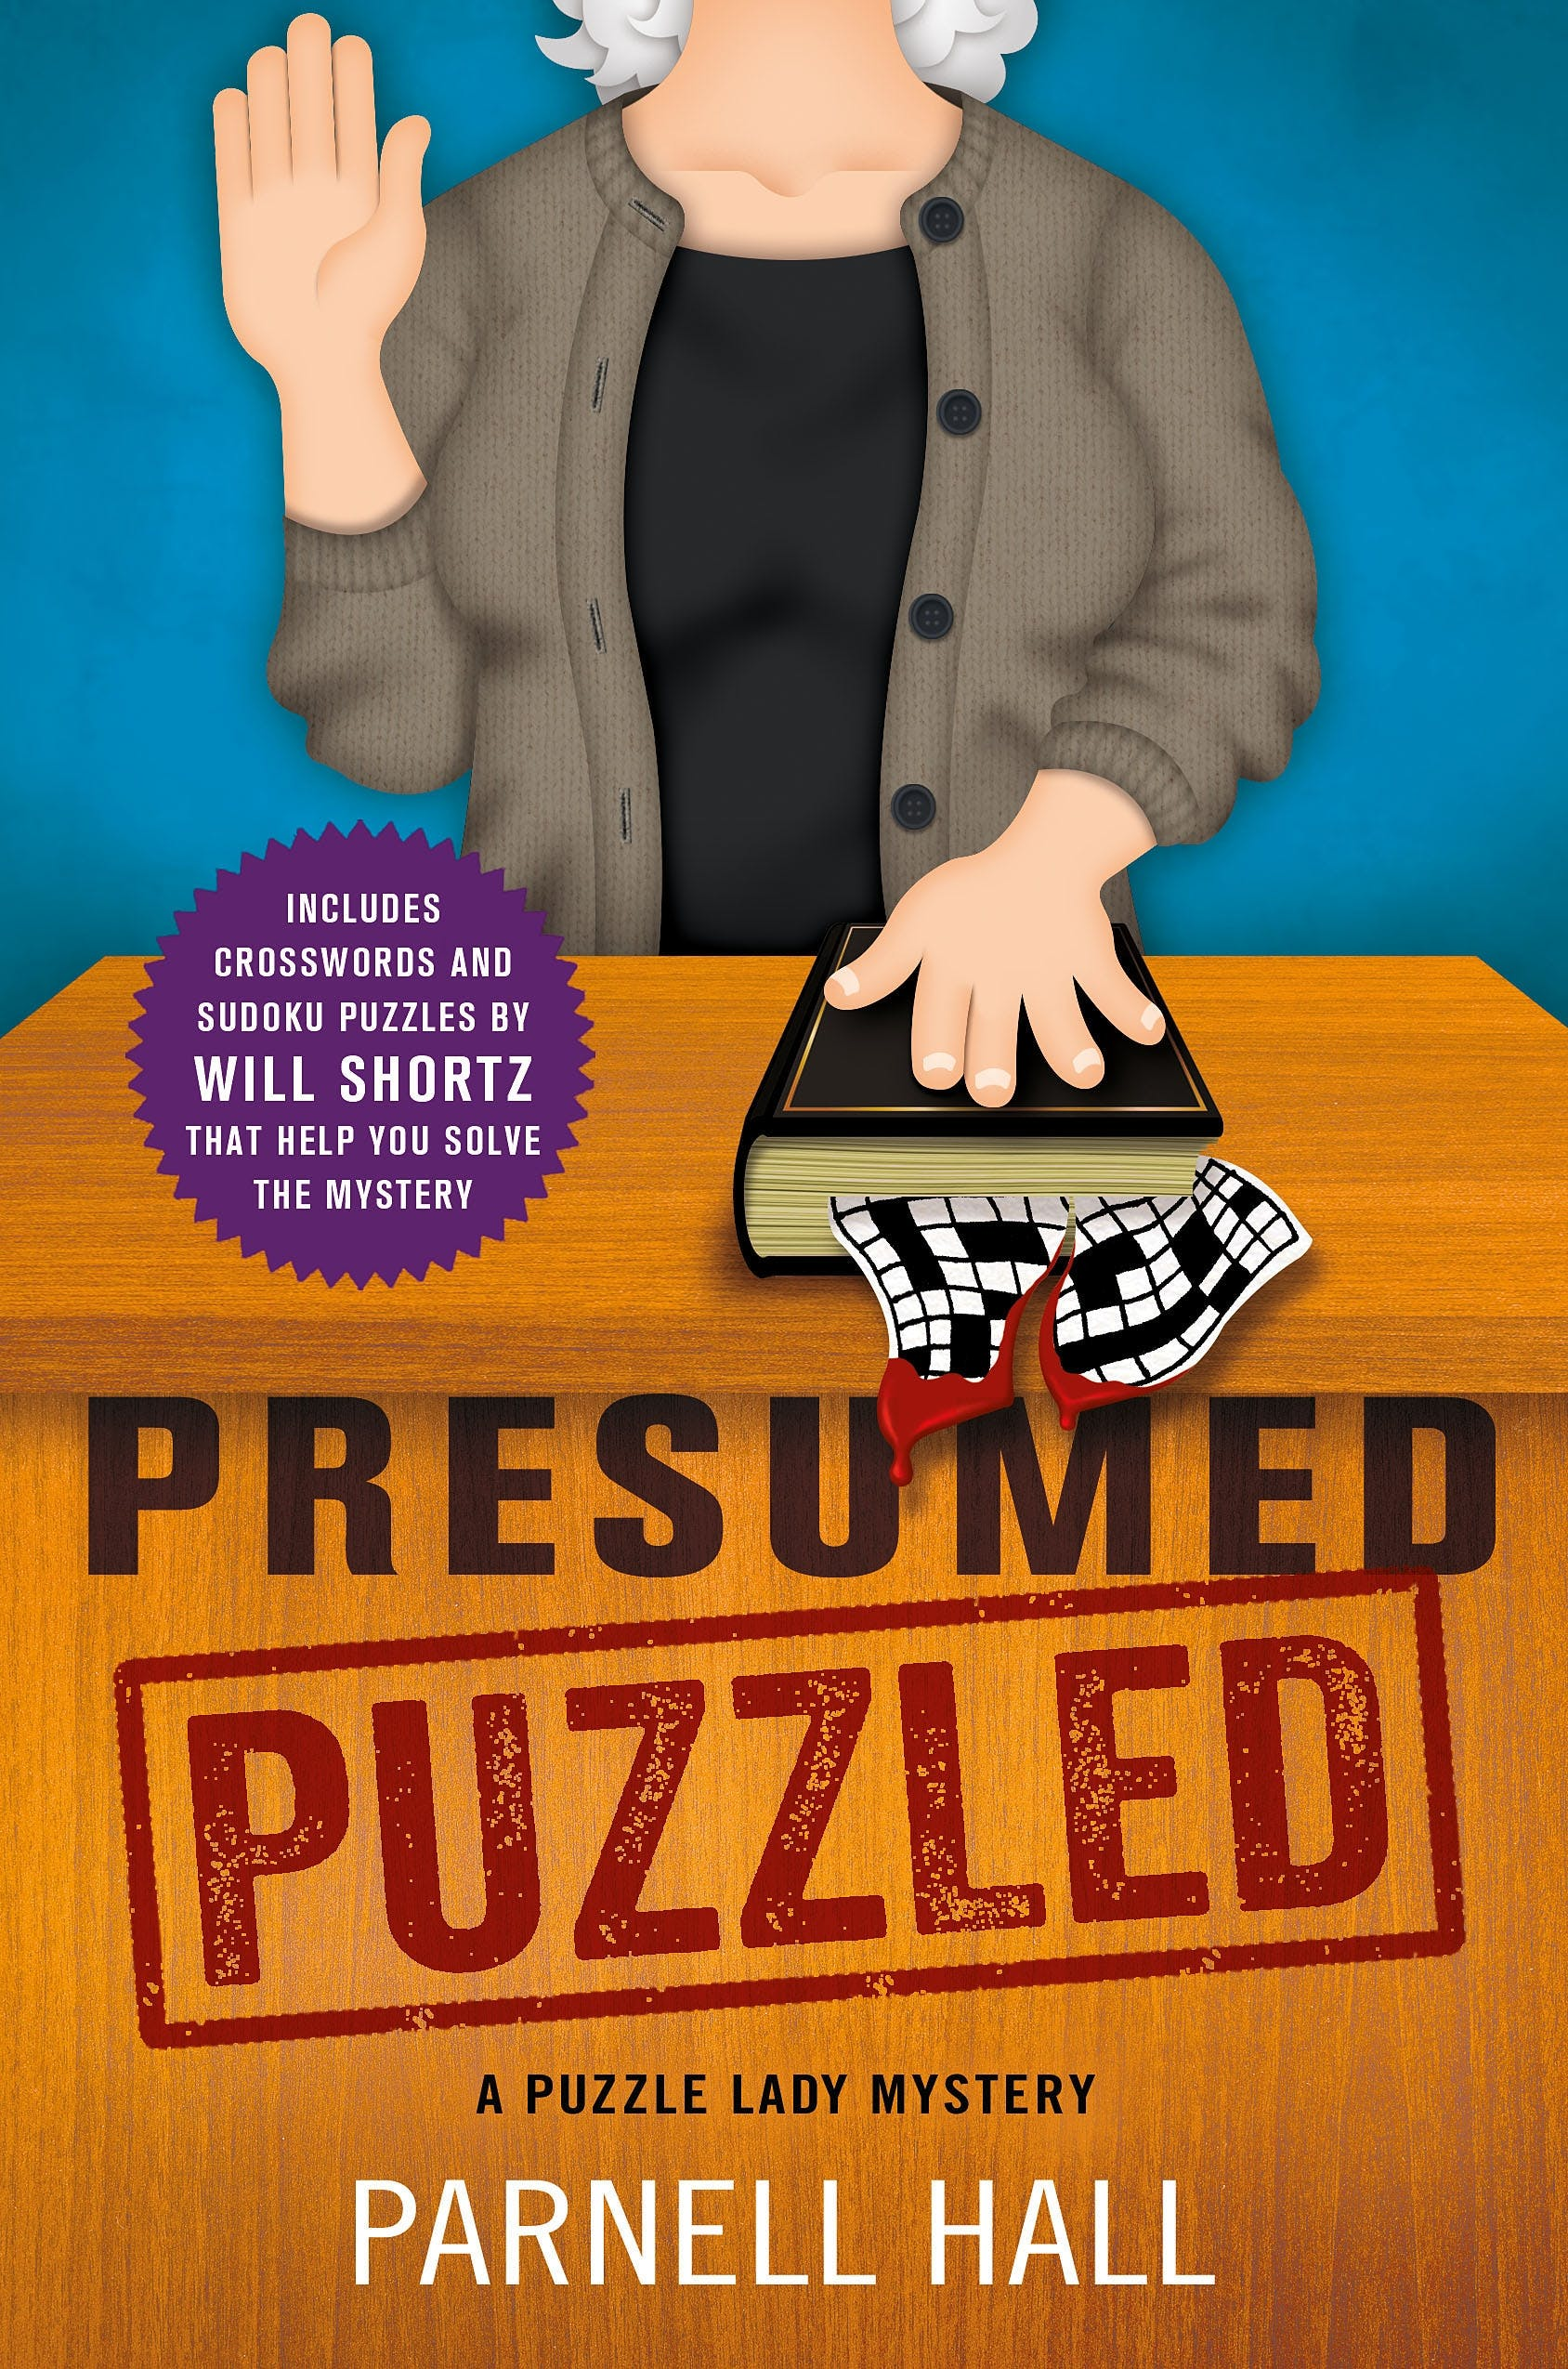 Image of Presumed Puzzled